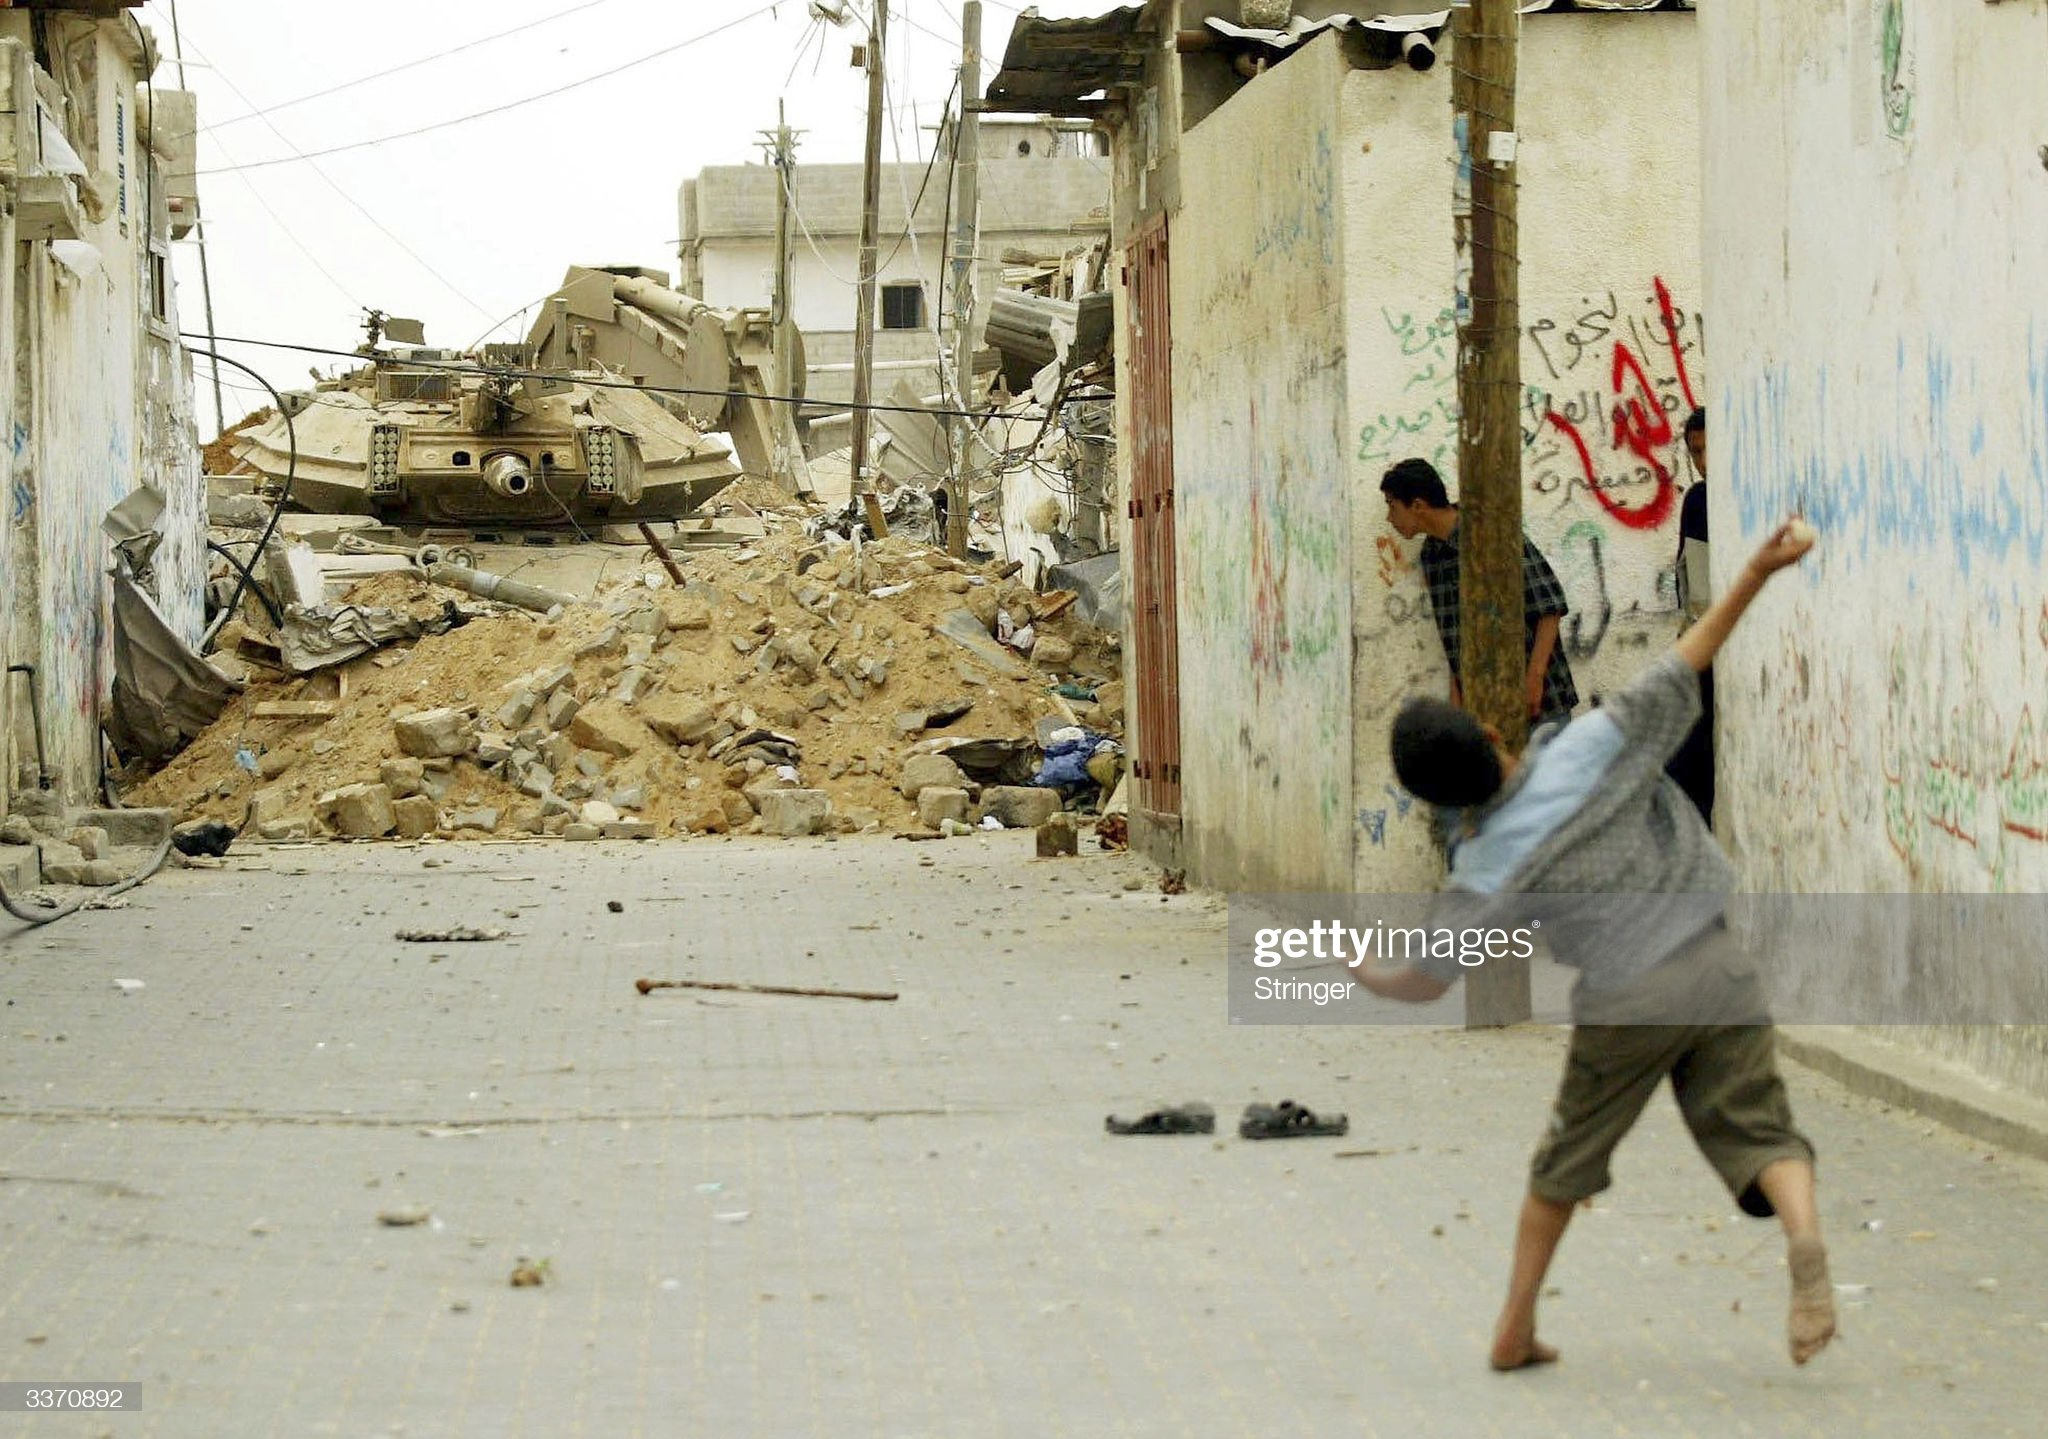 https://media.gettyimages.com/photos/palestinian-boys-throw-stones-towards-an-israeli-tank-during-an-army-picture-id3370892?s=2048x2048